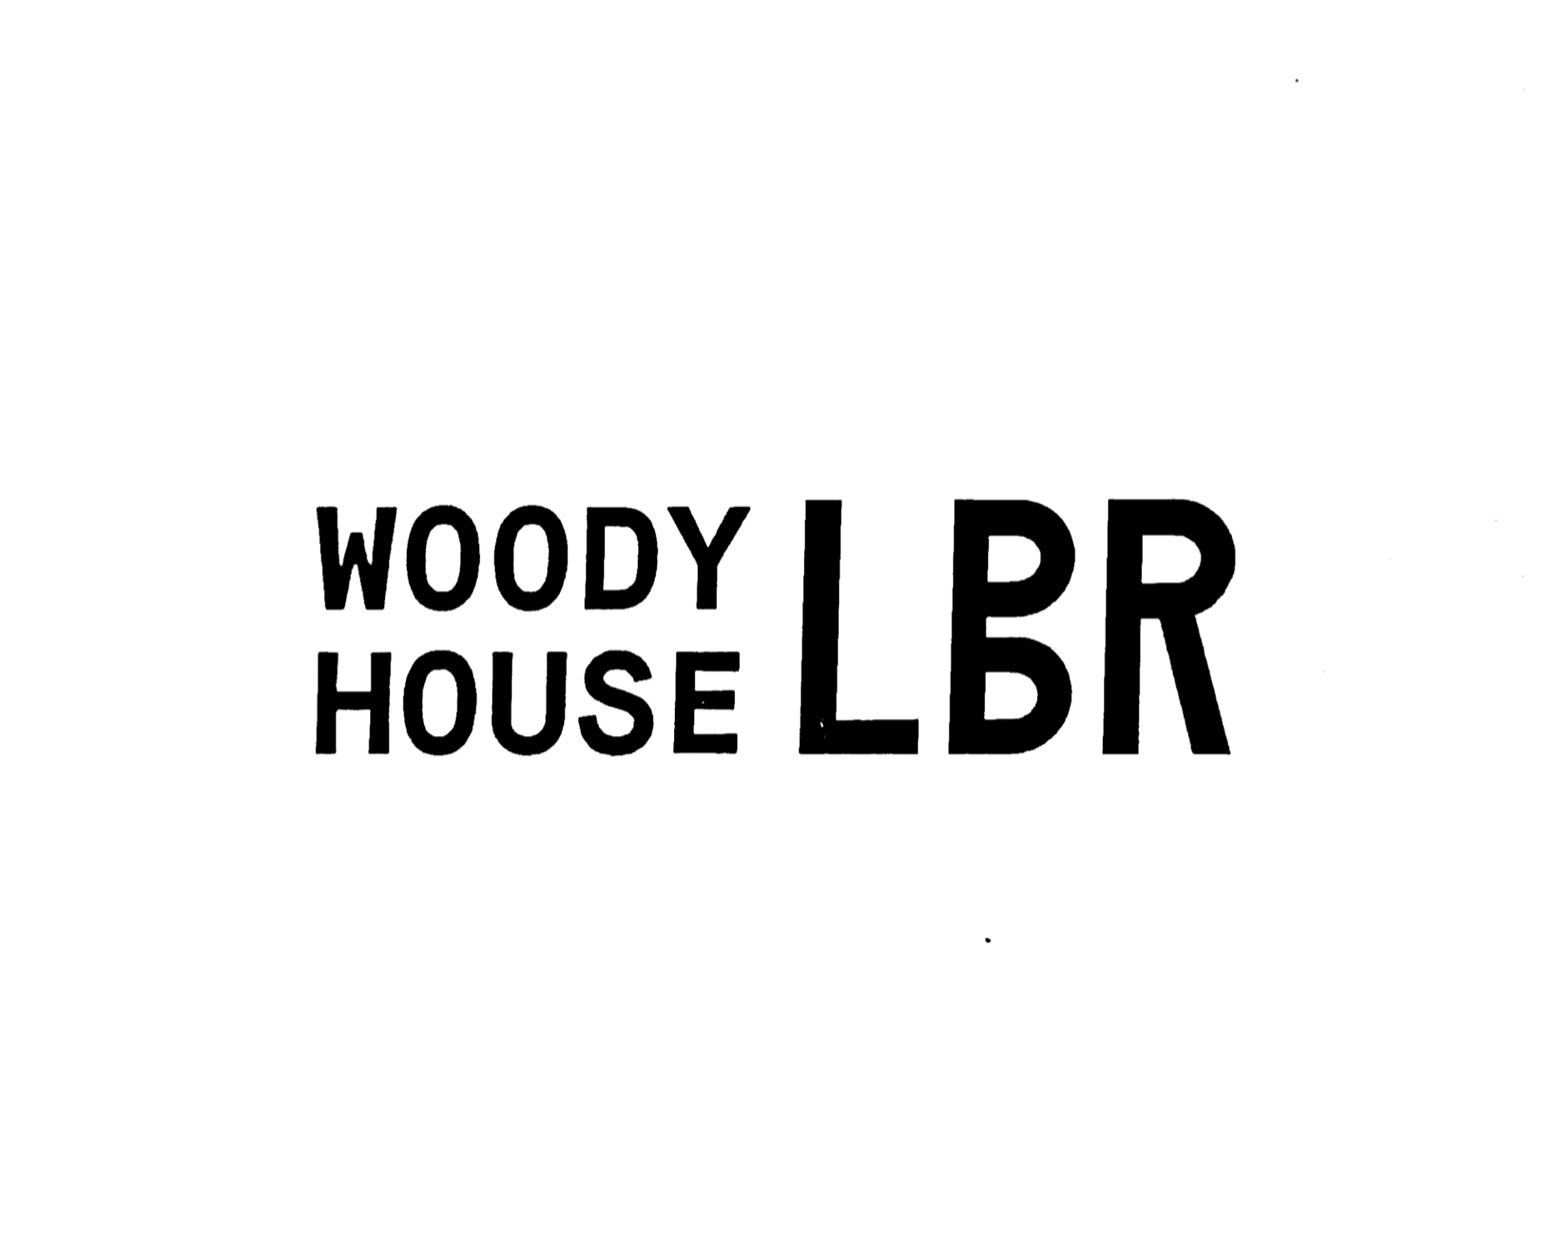 WOODY HOUSE LBR